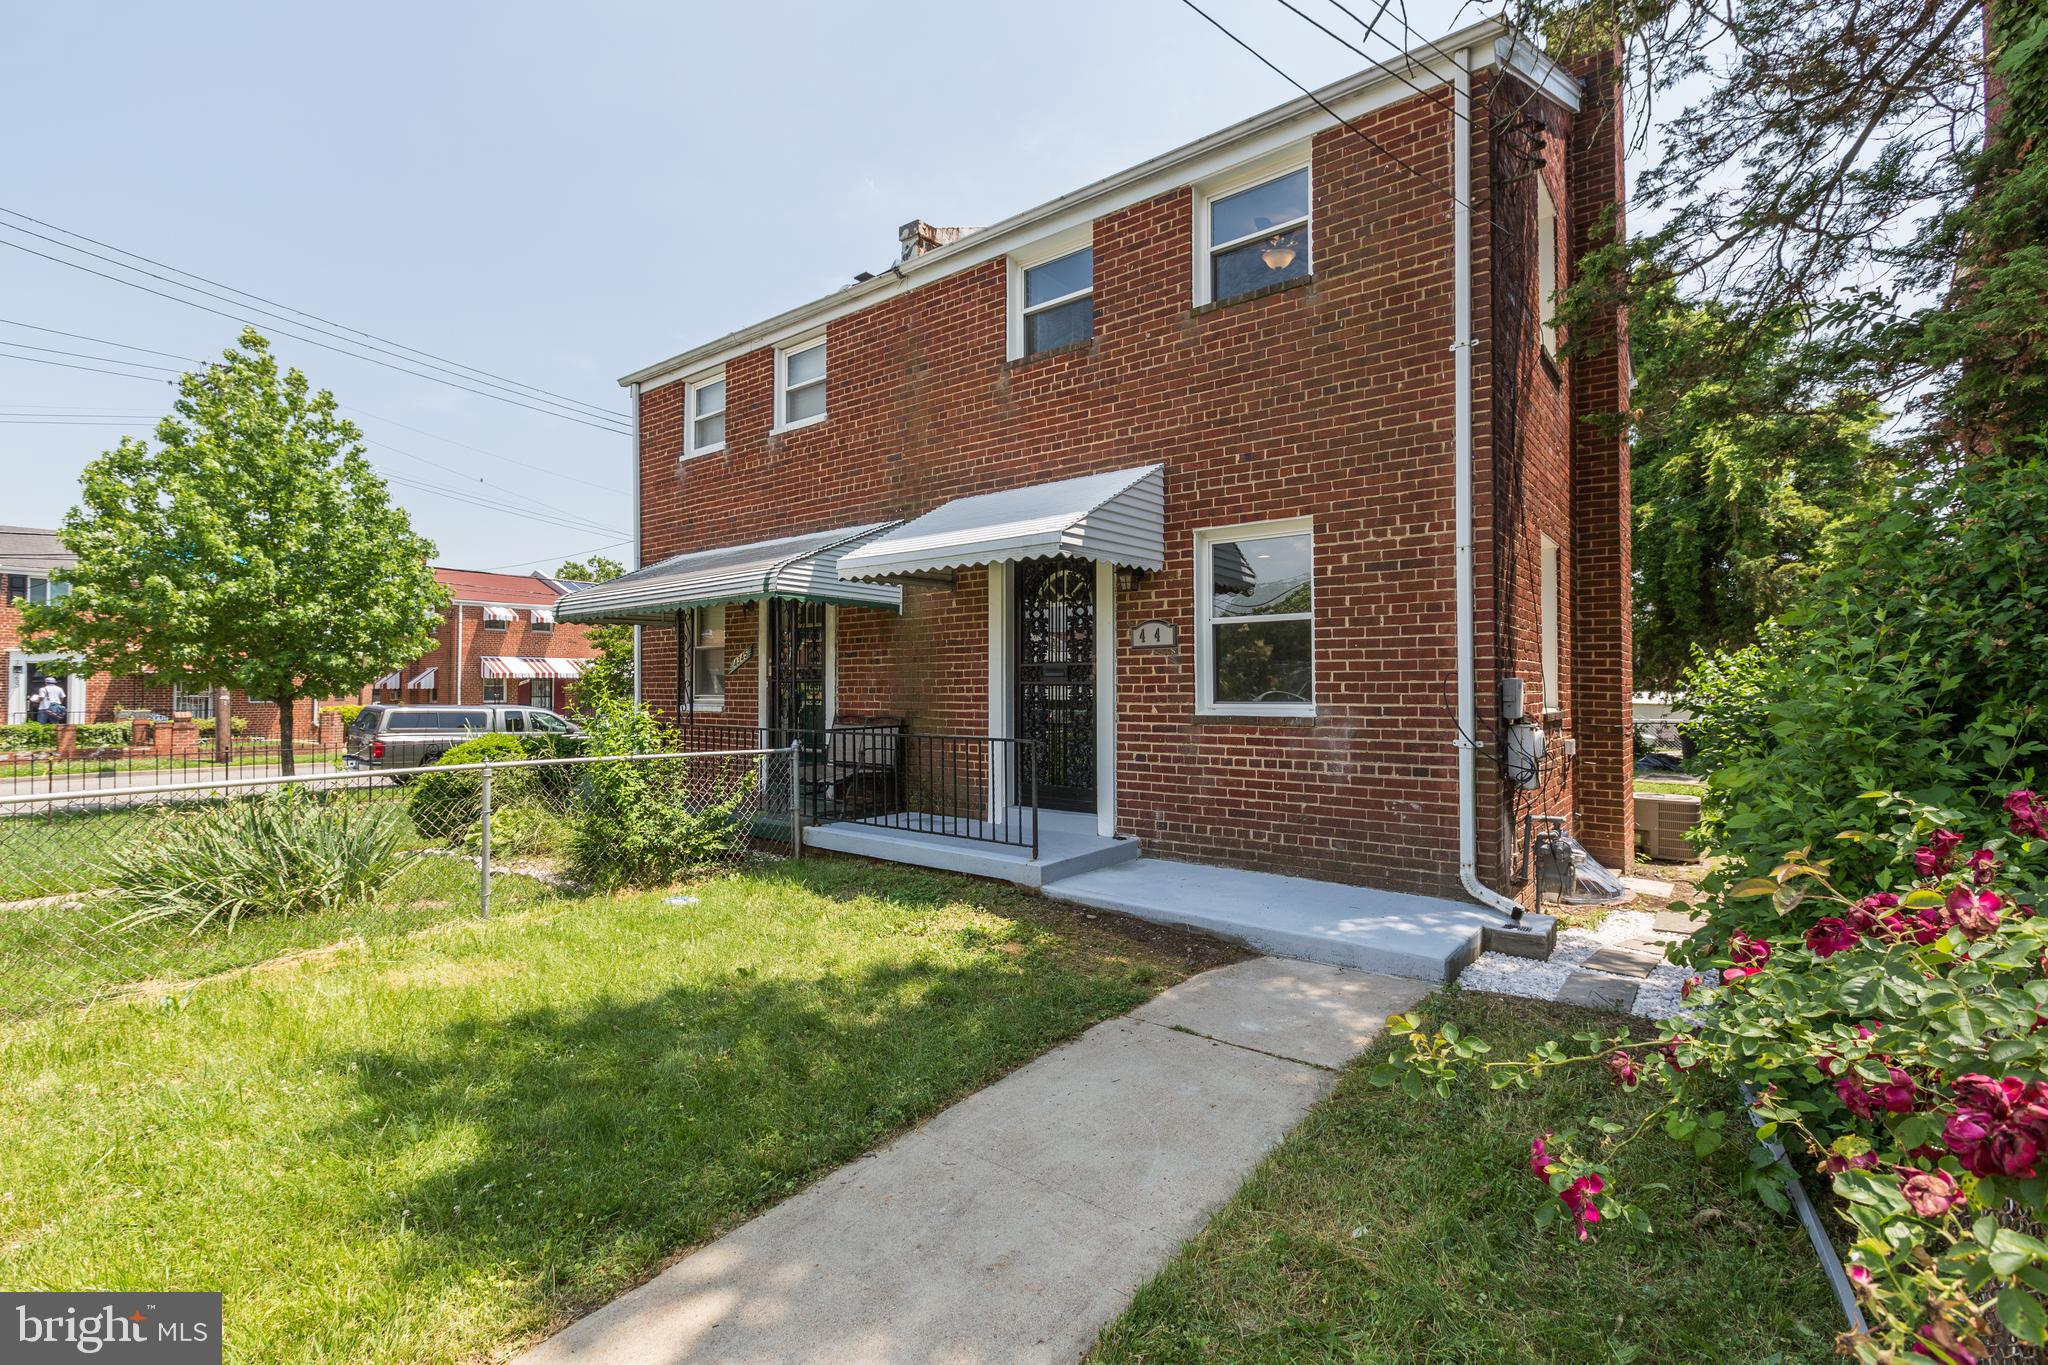 Stunningly renovated full 3bed 2bath semi-detached rowhome in the very quiet Fort Dupont Park neighb